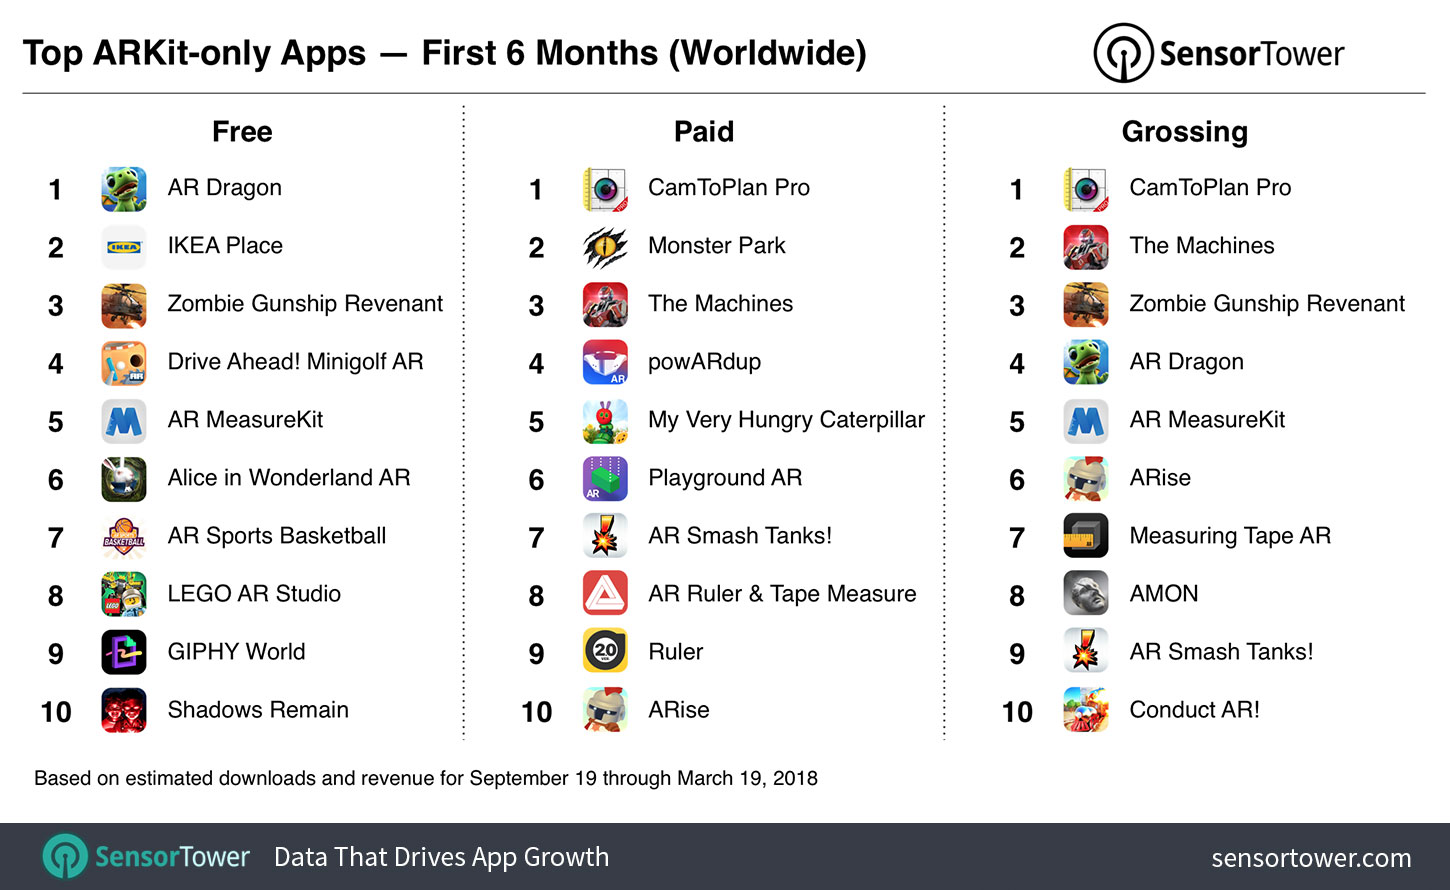 Ranking of top free, paid, and grossing ARKit apps overall for September 19, 2017 to March 19, 2018